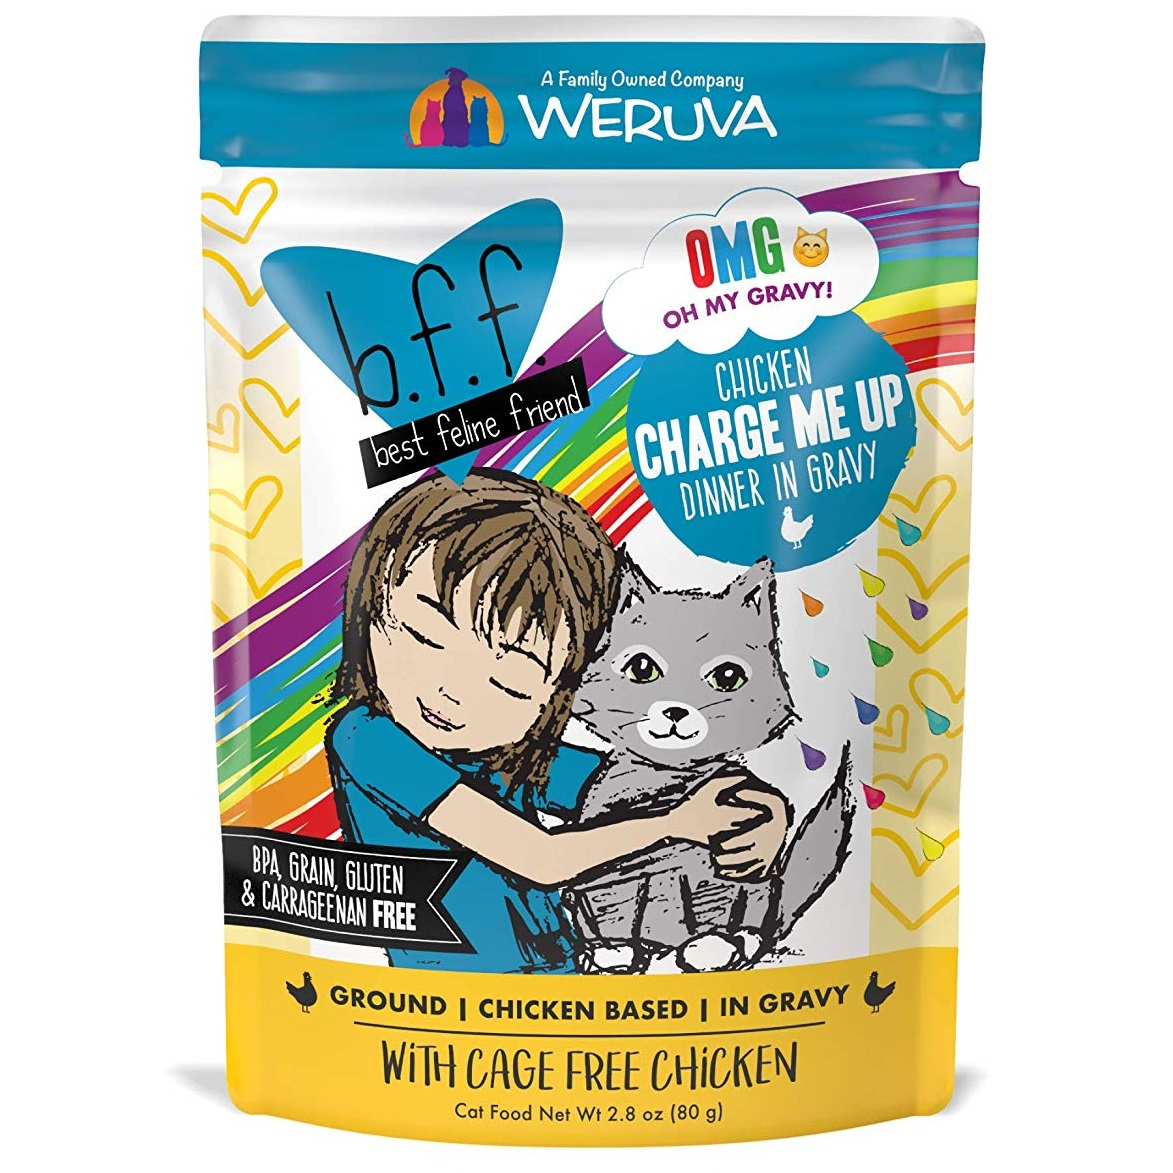 BFF Oh My Gravy! Charge Me Up! Chicken Dinner in Gravy Grain-Free Wet Cat Food, 2.8-oz pouch Size: 2.8-oz pouch